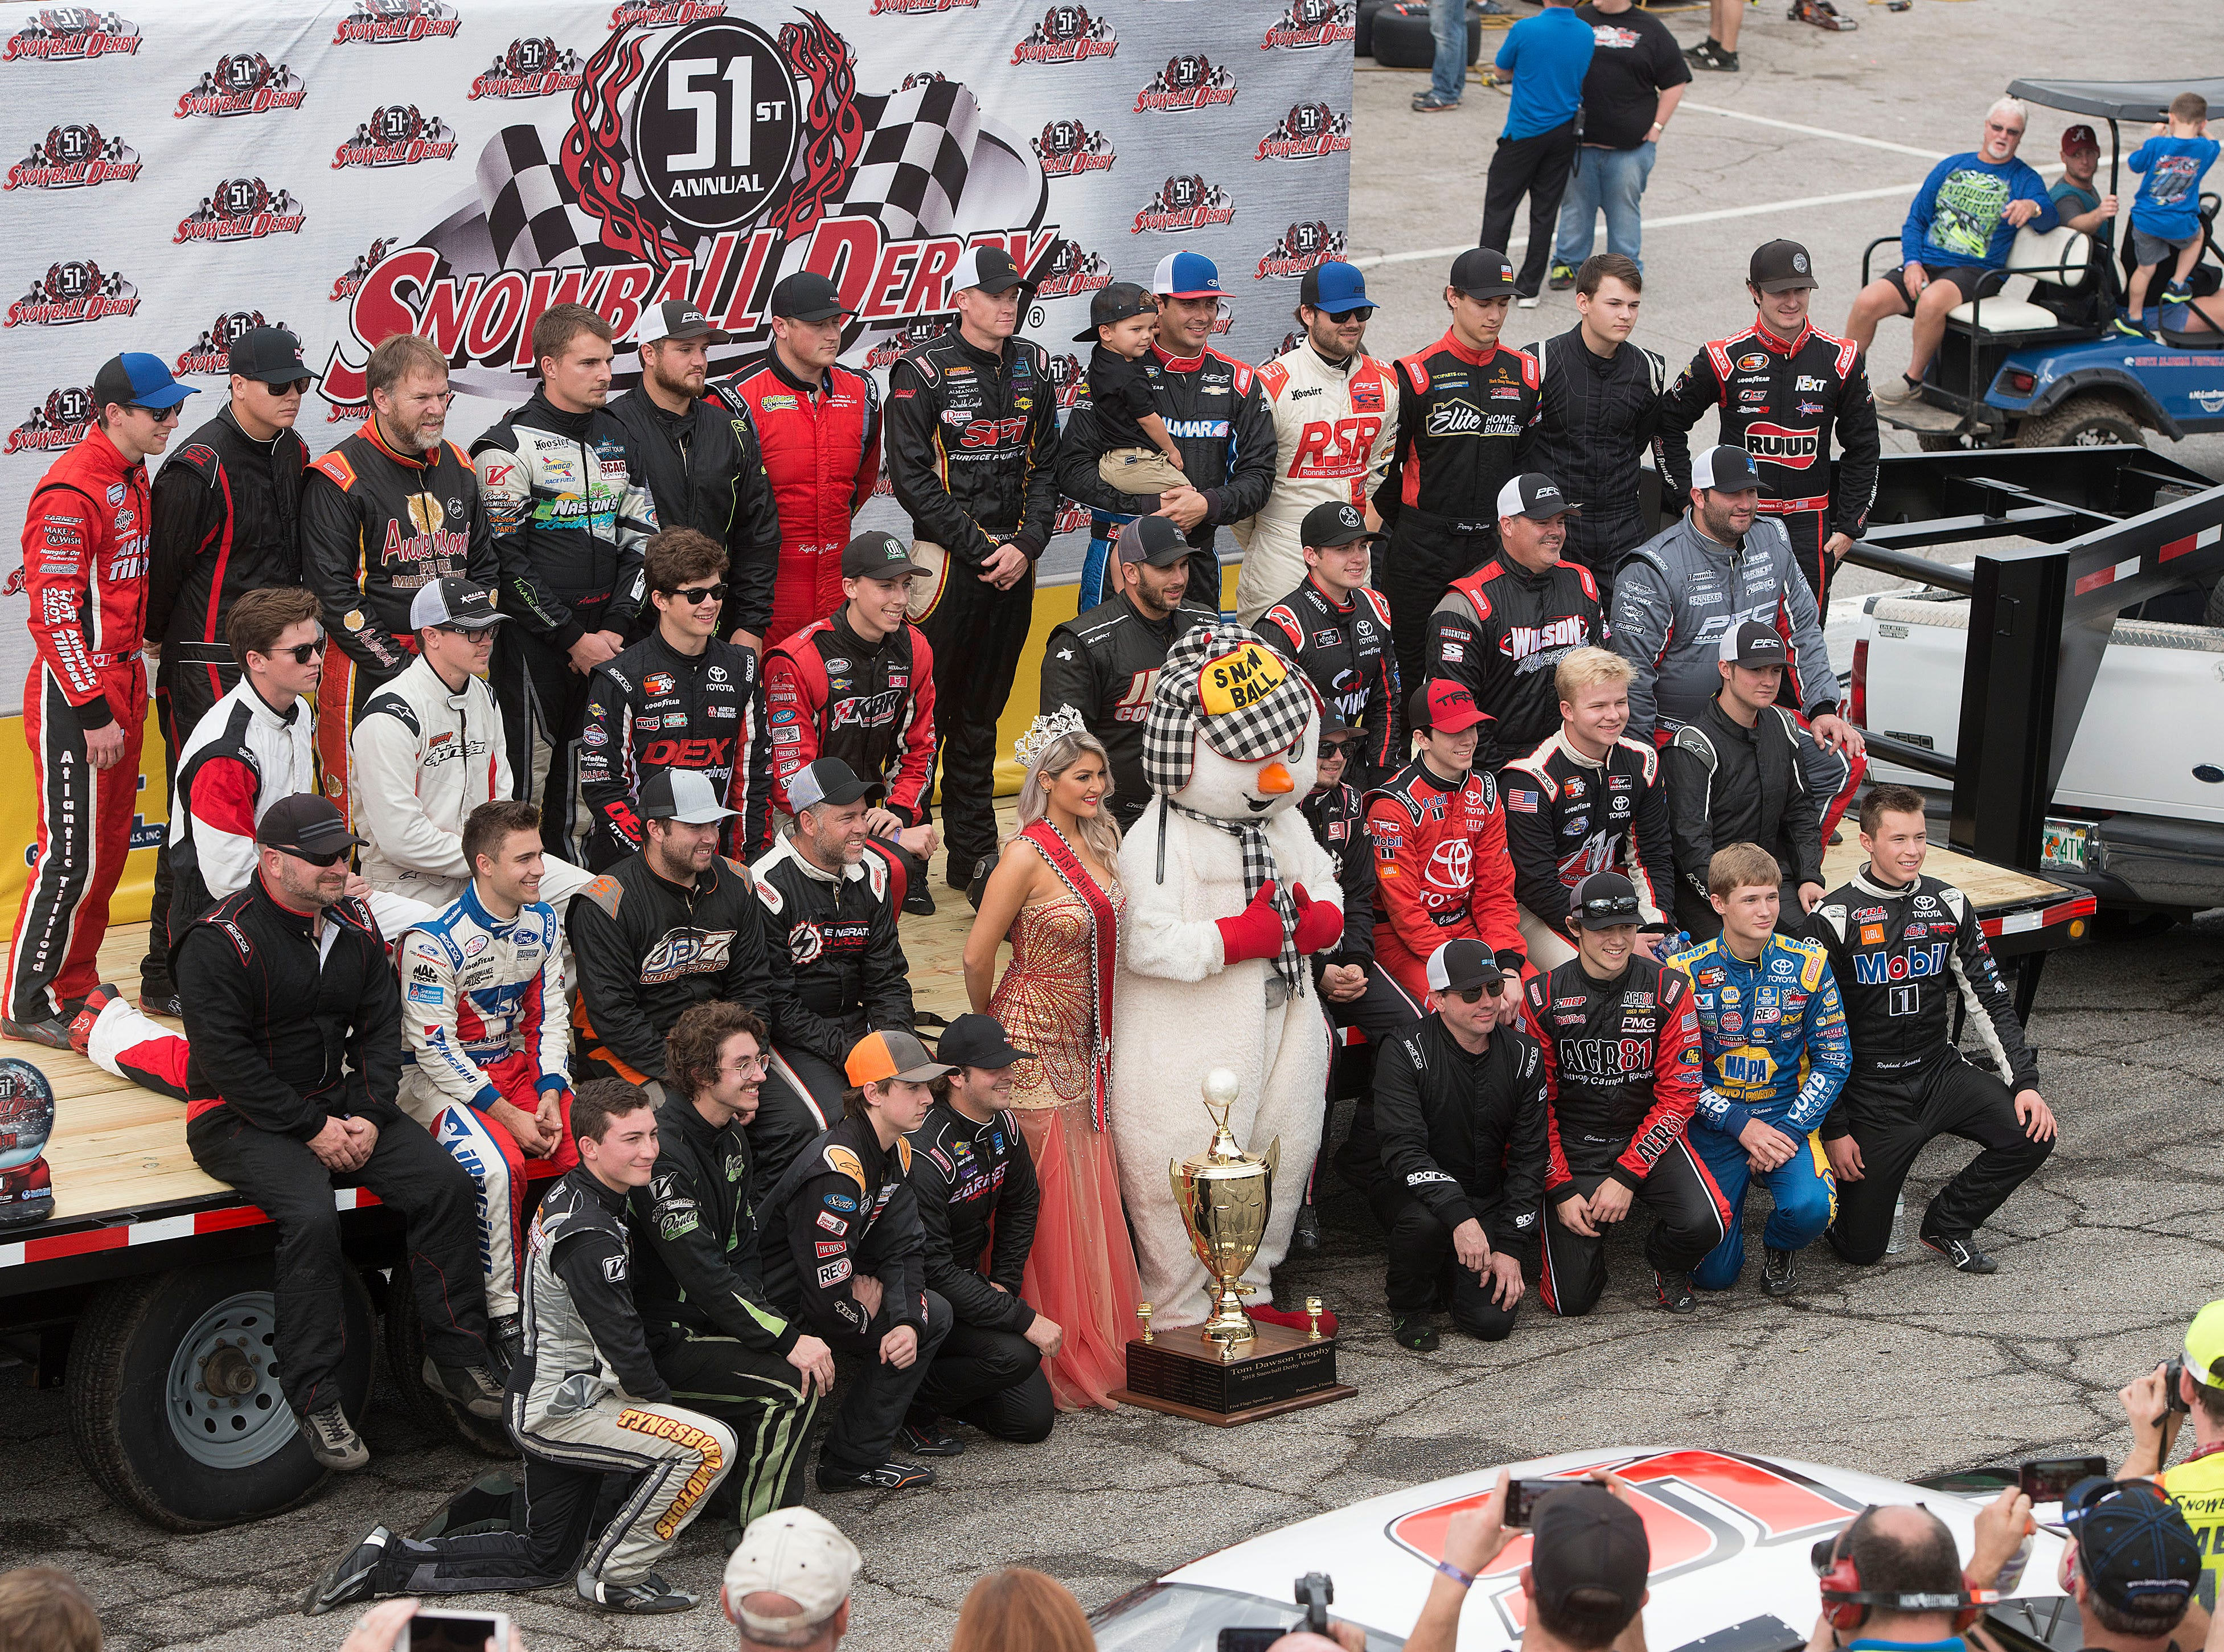 Drivers pose for a group shot Sunday, December 2, 2018 during the 51st annual Snowball Derby at Five Flags Speedway.